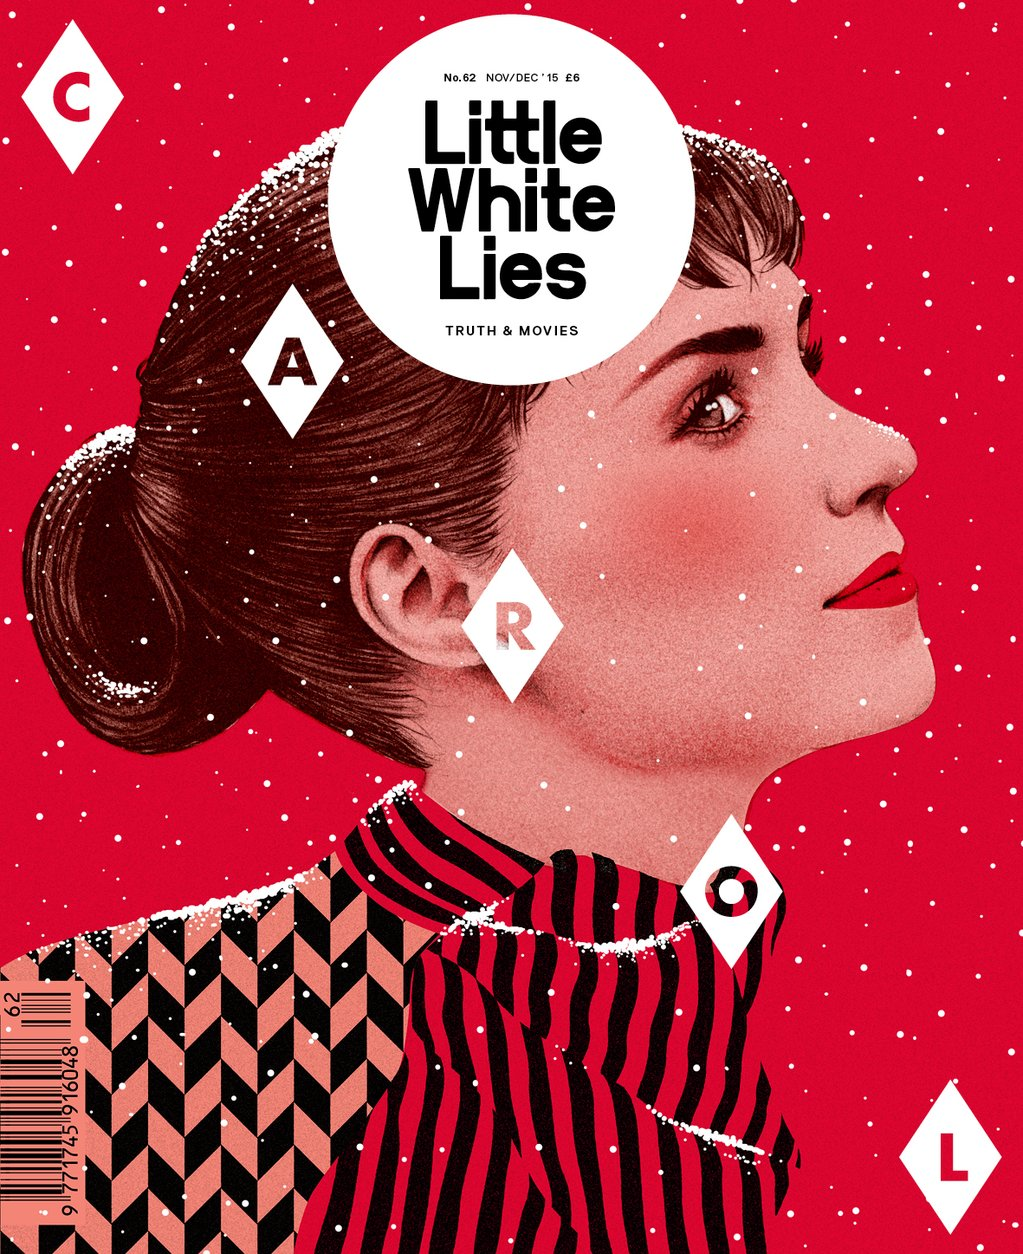 Little White Lies #62: Carol